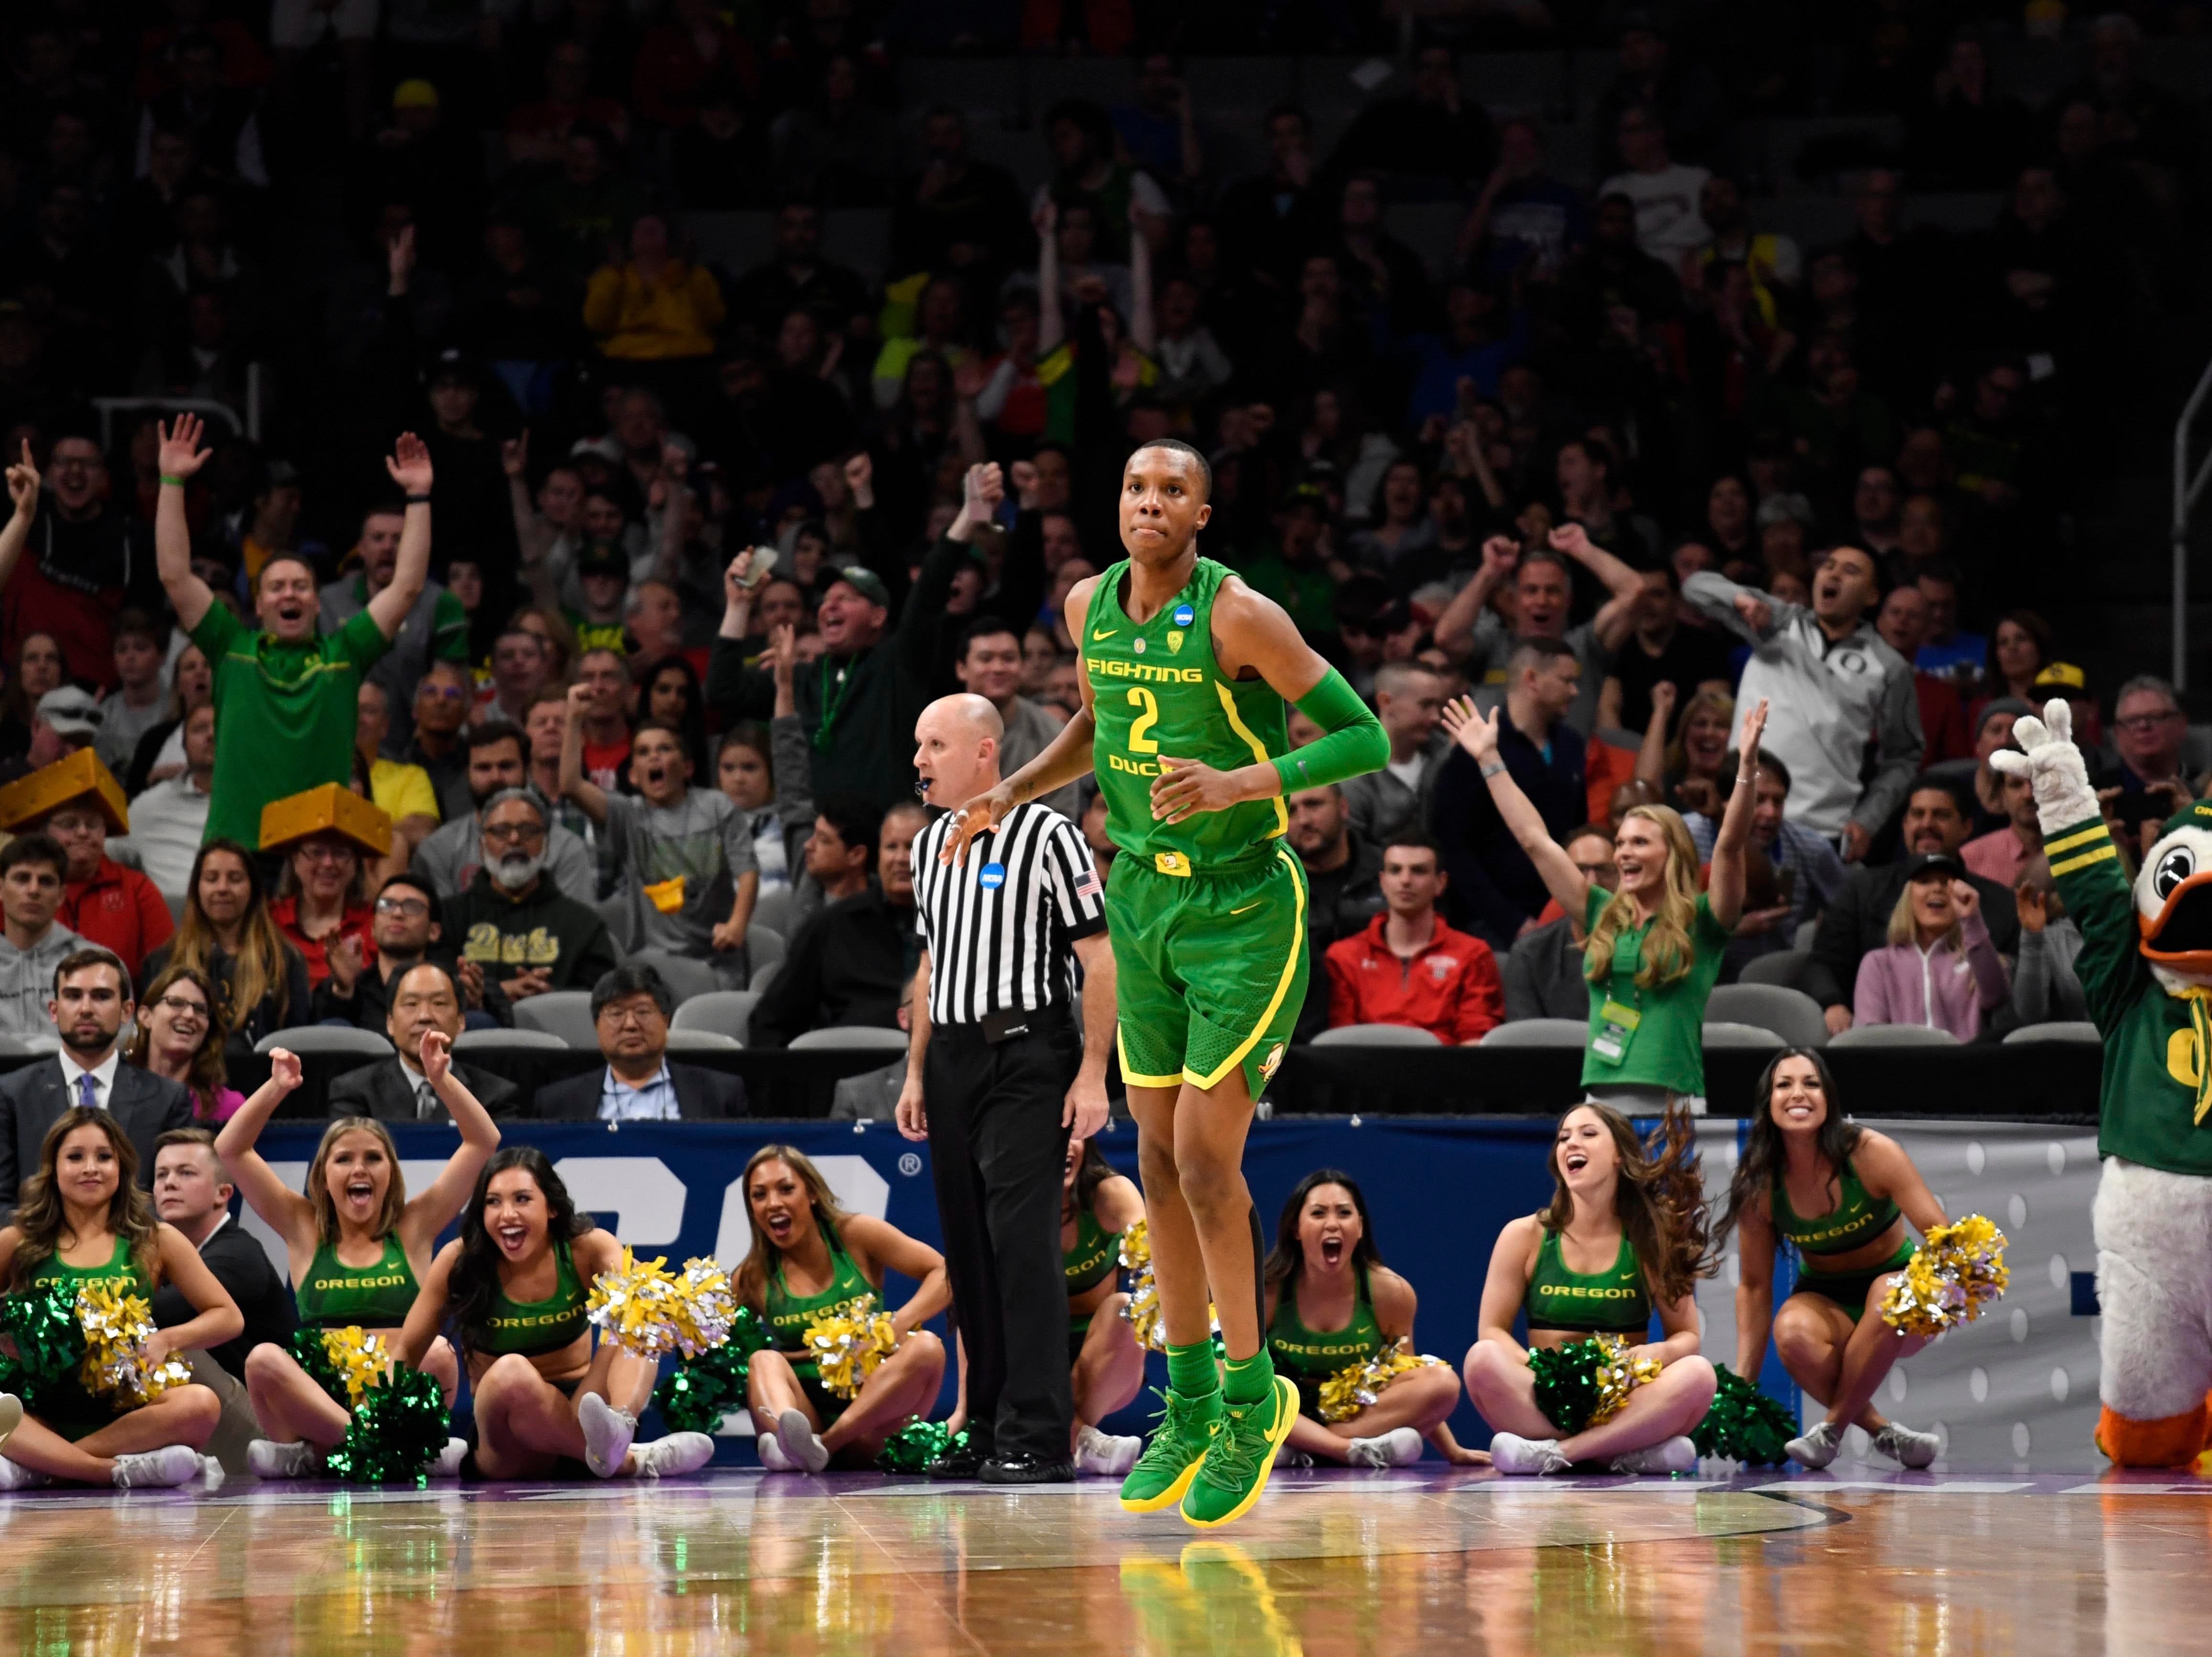 Mar 22, 2019; San Jose, CA, USA; Fans react behind Oregon Ducks forward Louis King (2) during the second half in the first round of the 2019 NCAA Tournament against the Wisconsin Badgers at SAP Center. Mandatory Credit: Kelley L Cox-USA TODAY Sports